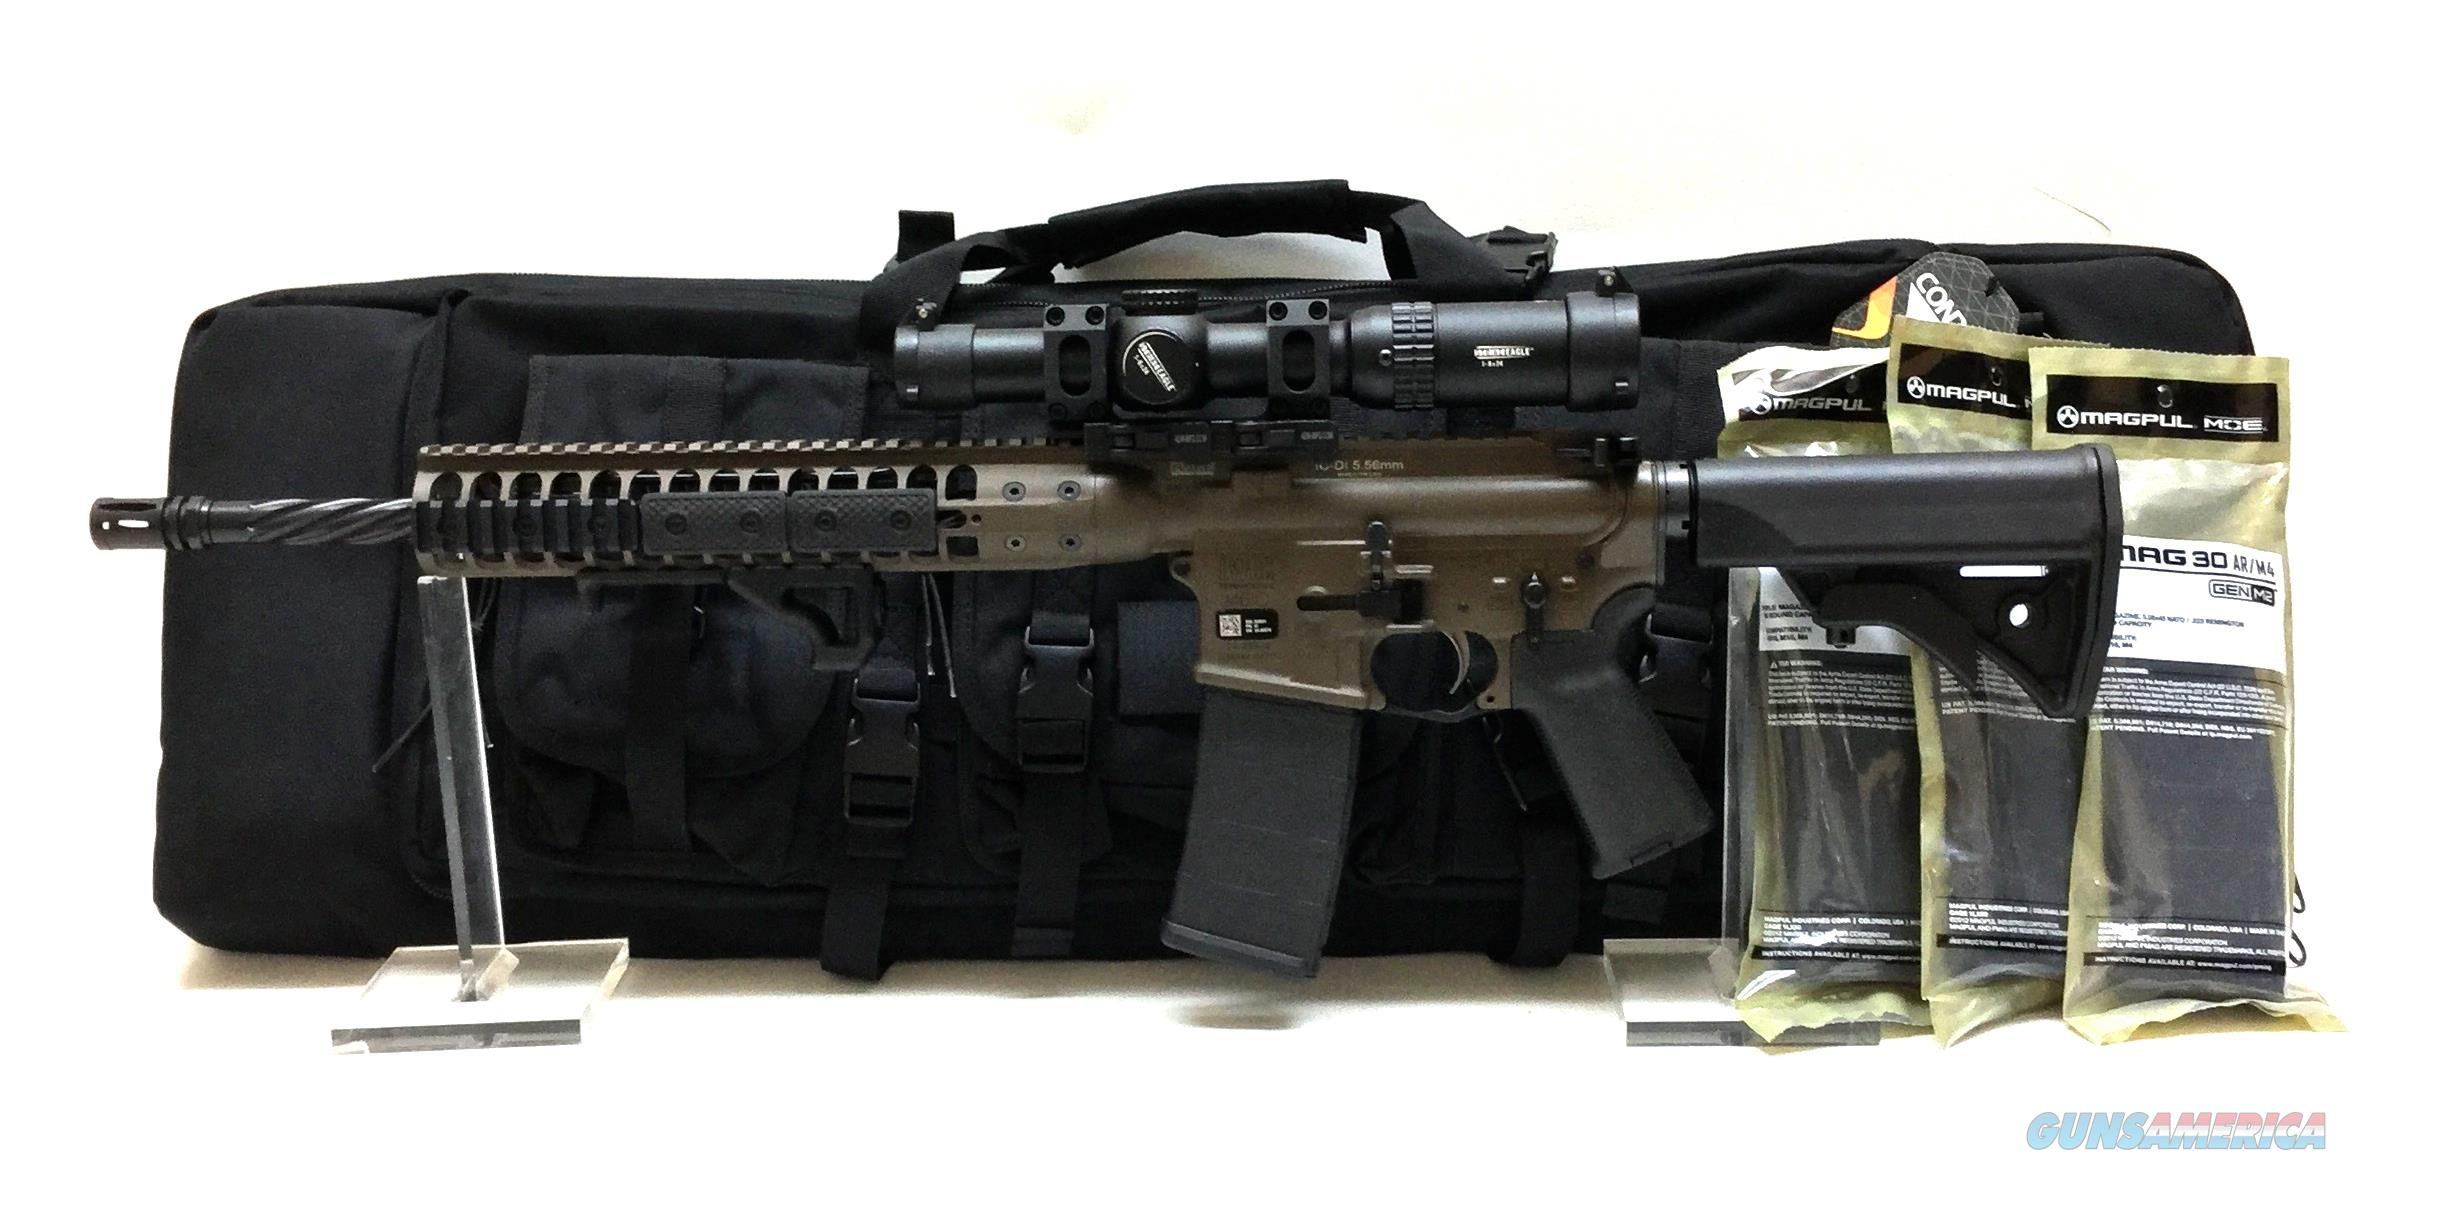 "LWRC IC DI 5.56 16"" PATRIOT BROWN PACKAGE DEAL  Guns > Rifles > AR-15 Rifles - Small Manufacturers > Complete Rifle"